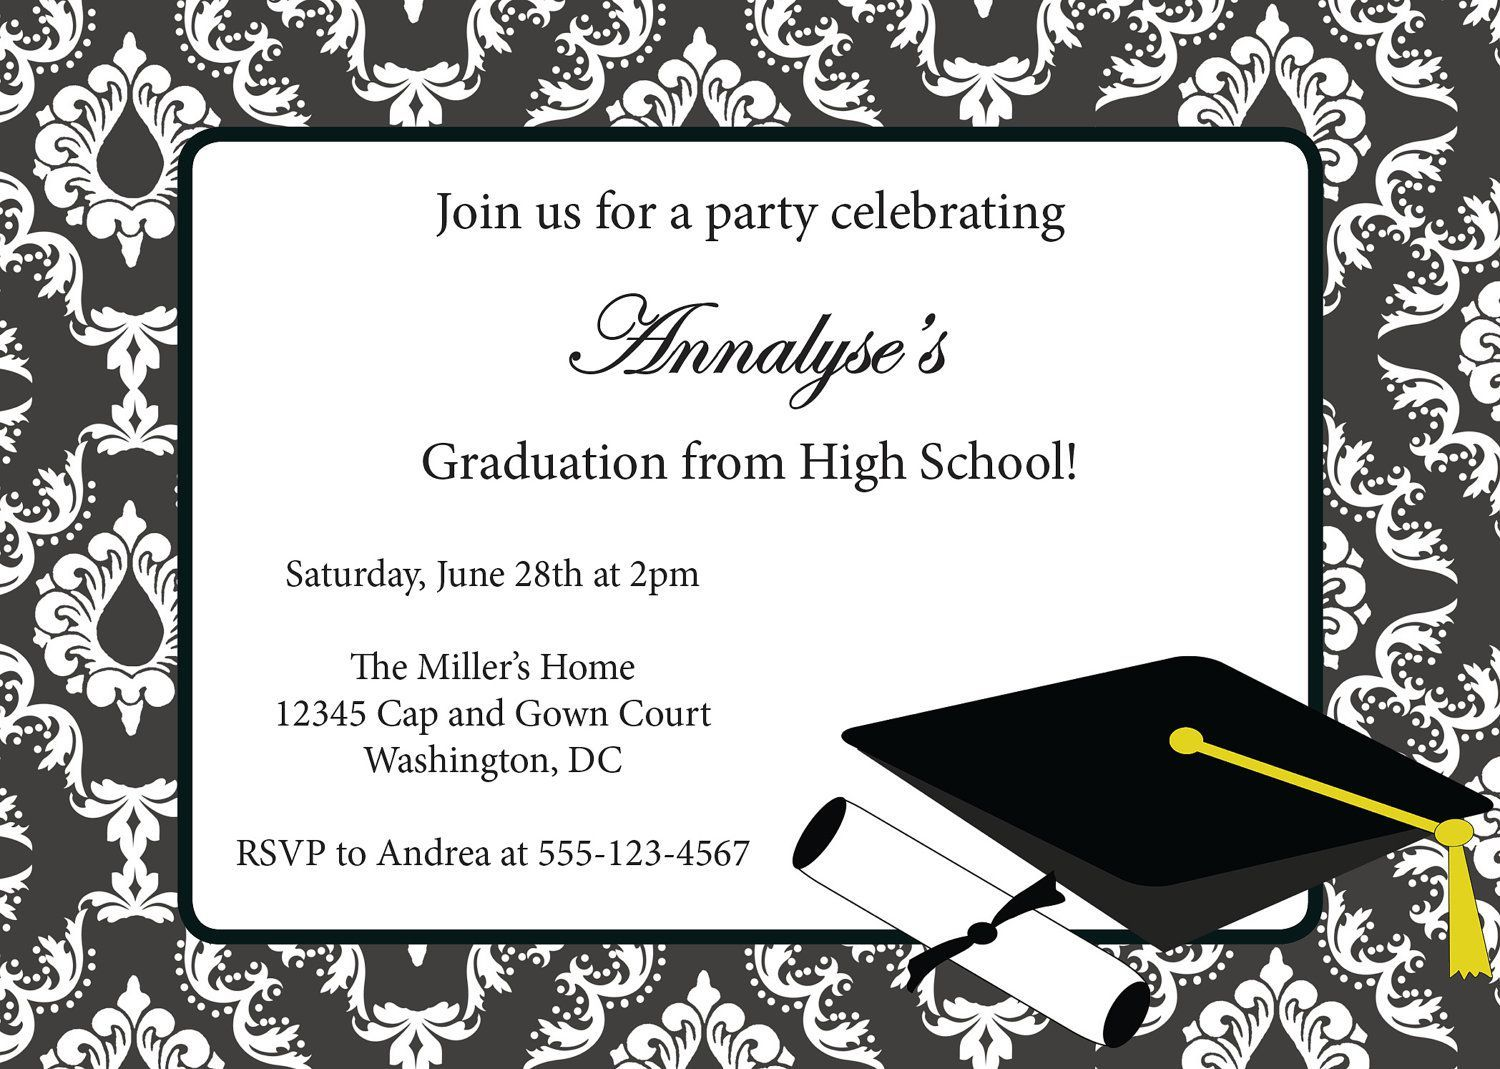 002 Amazing College Graduation Invitation Template Sample  Party Free For WordFull